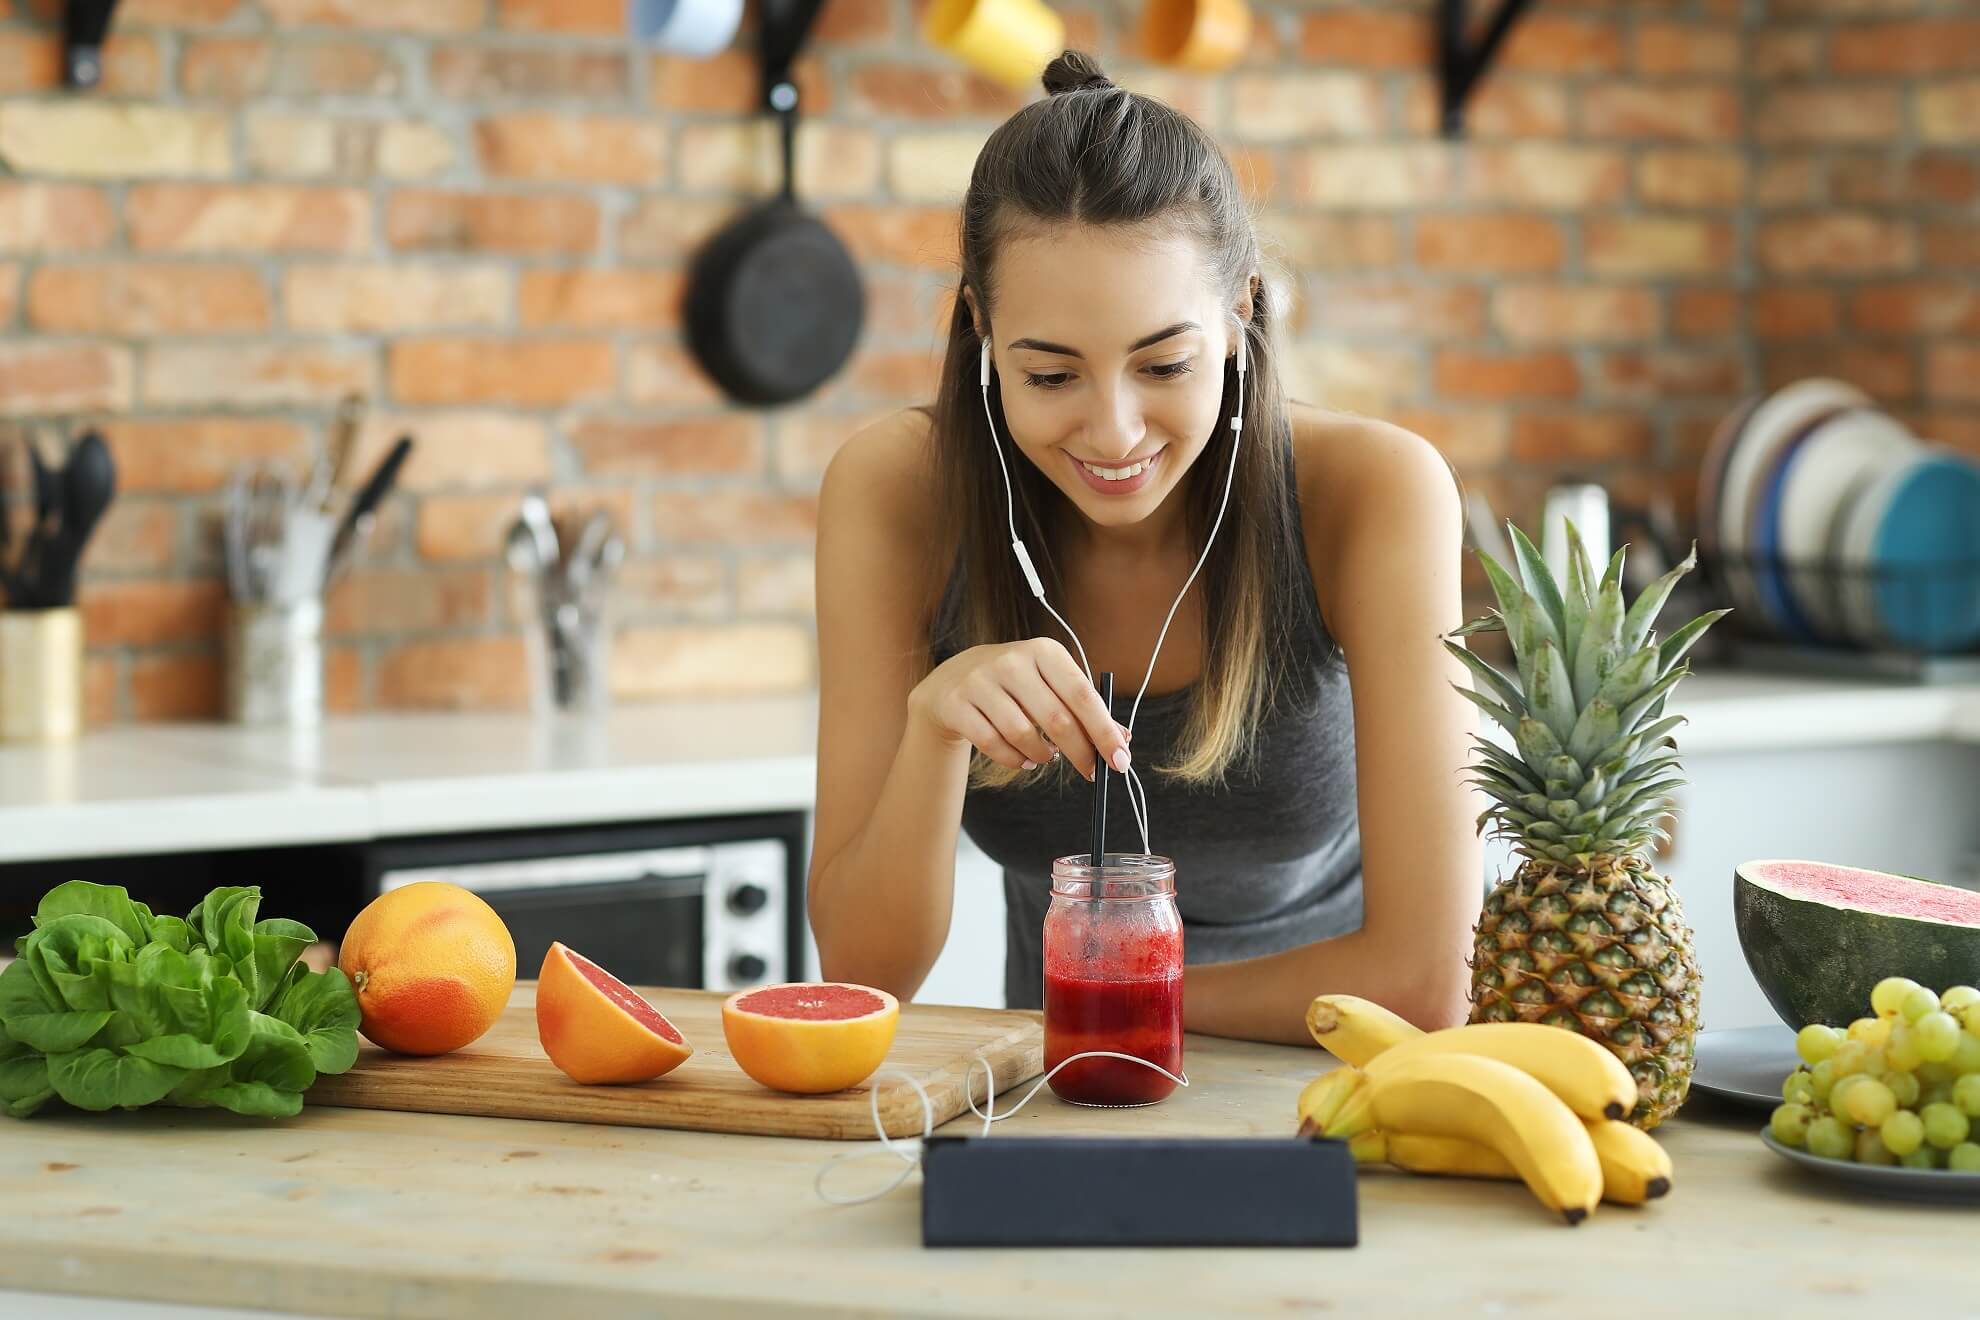 What are the Health Benefits of Juicing?